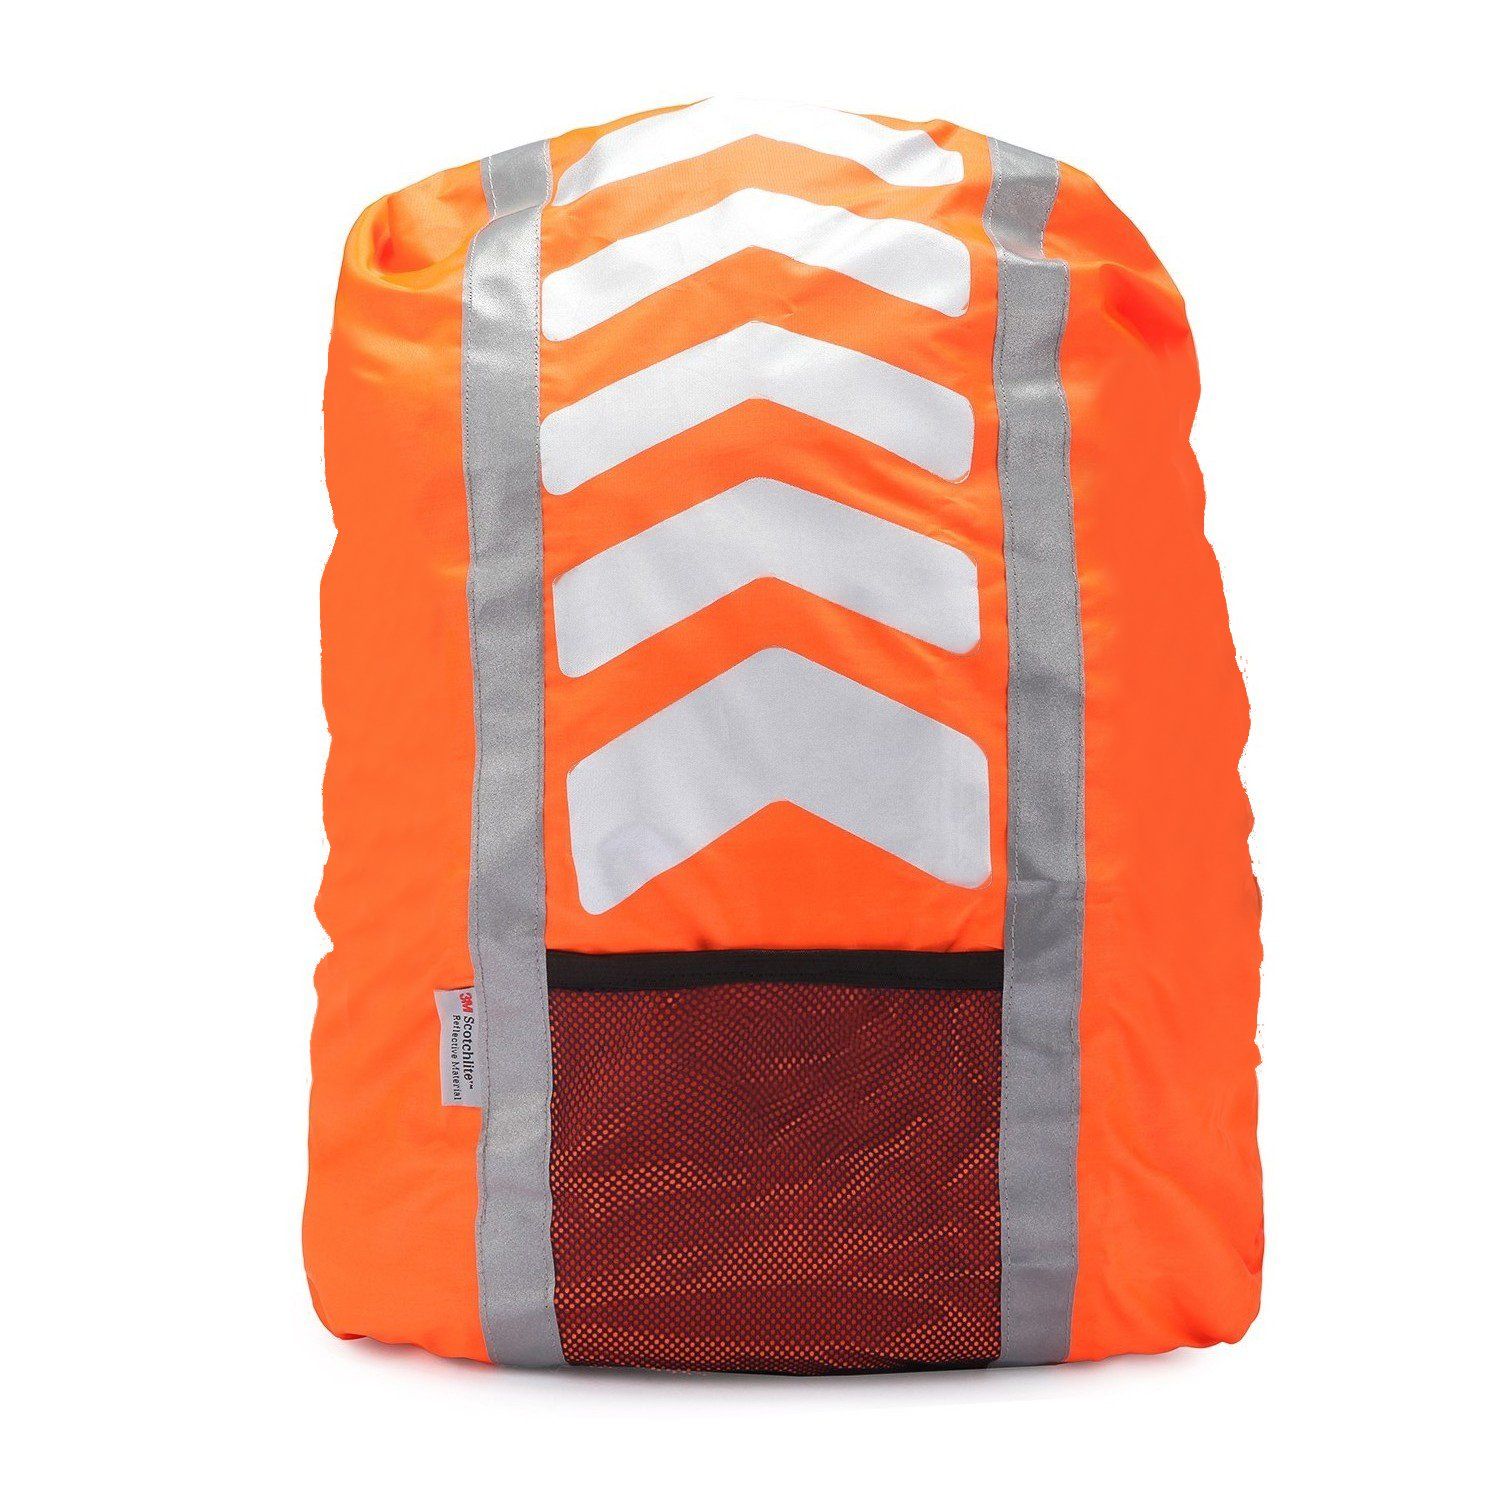 Radiancy Inc High Visibility Reflective Waterproof Rucksack Cycling or Running Backpack Cover YongKang Lemmy